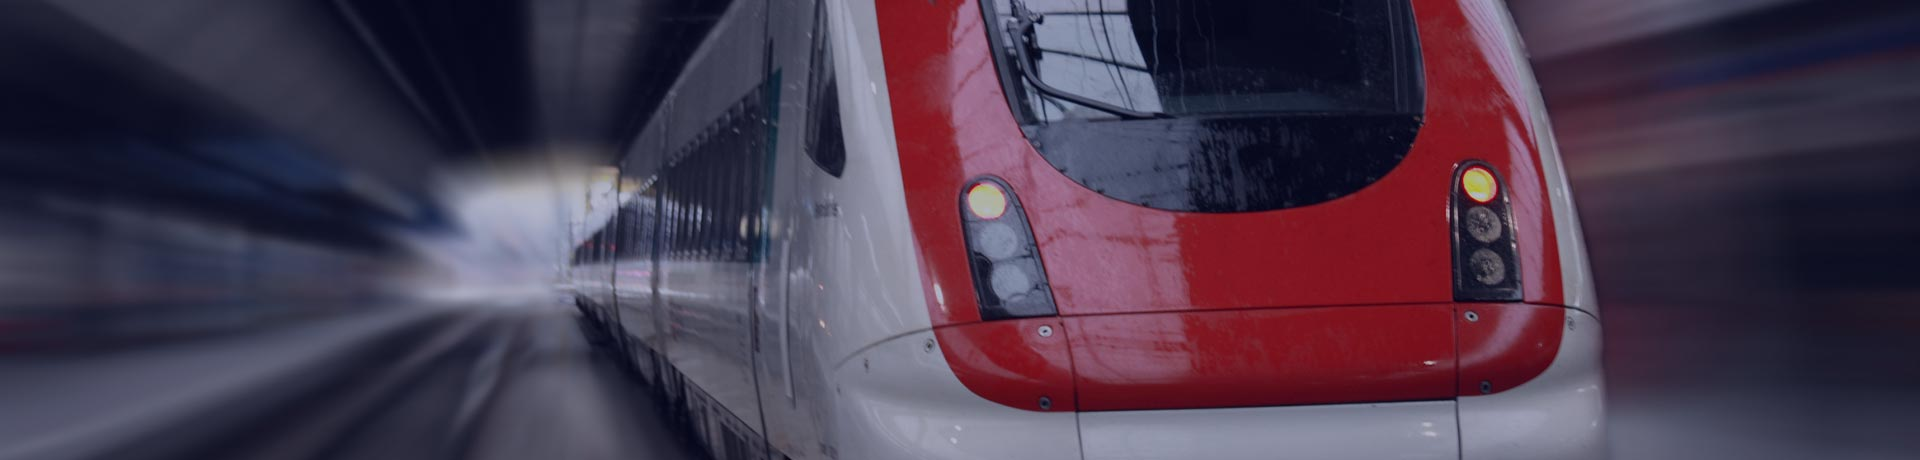 A train on the rails in motion